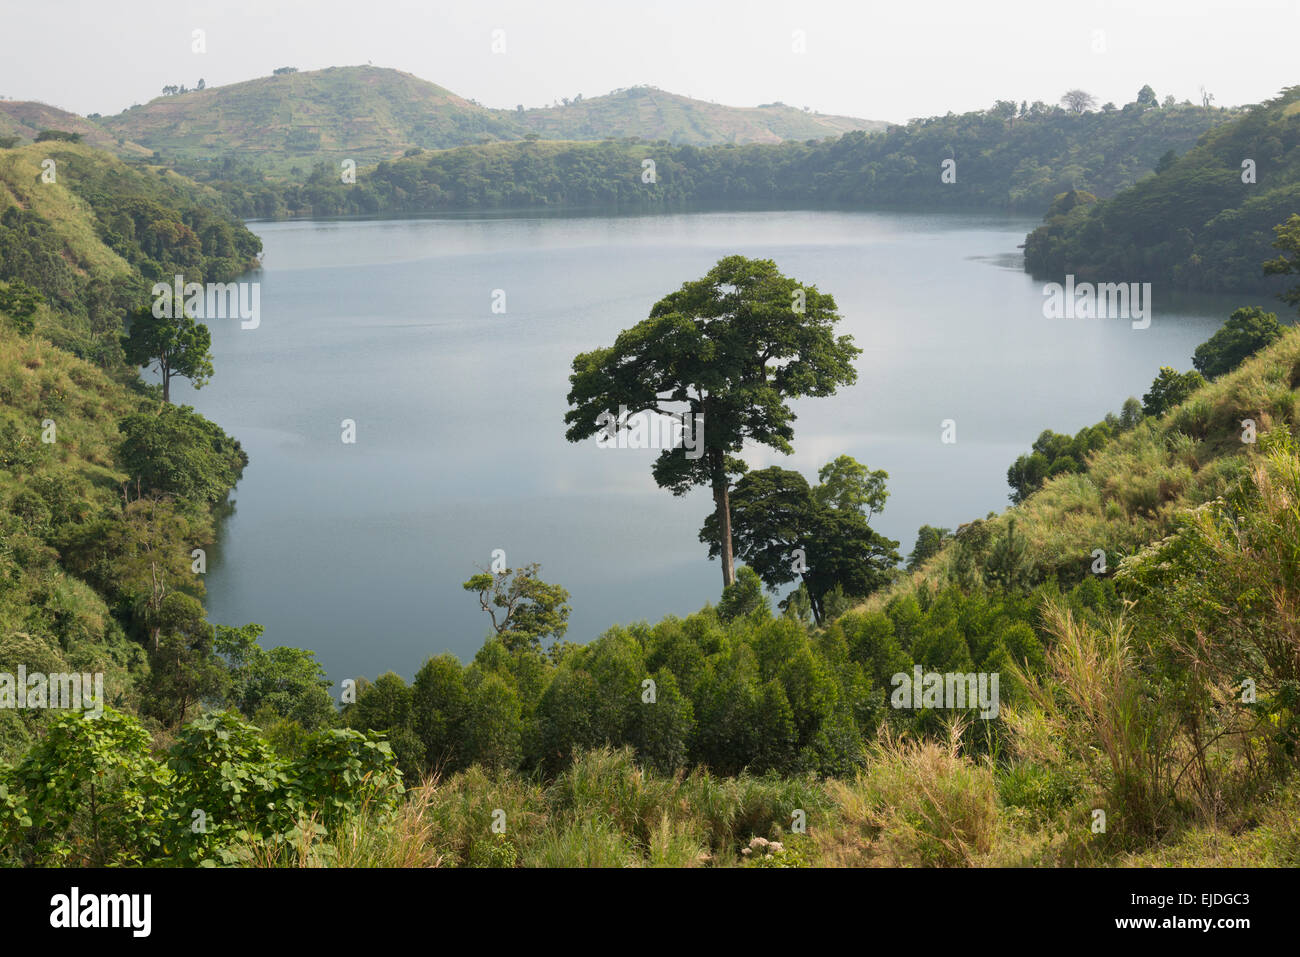 Lacs de cratère. Fort portale. L'Ouganda. Photo Stock